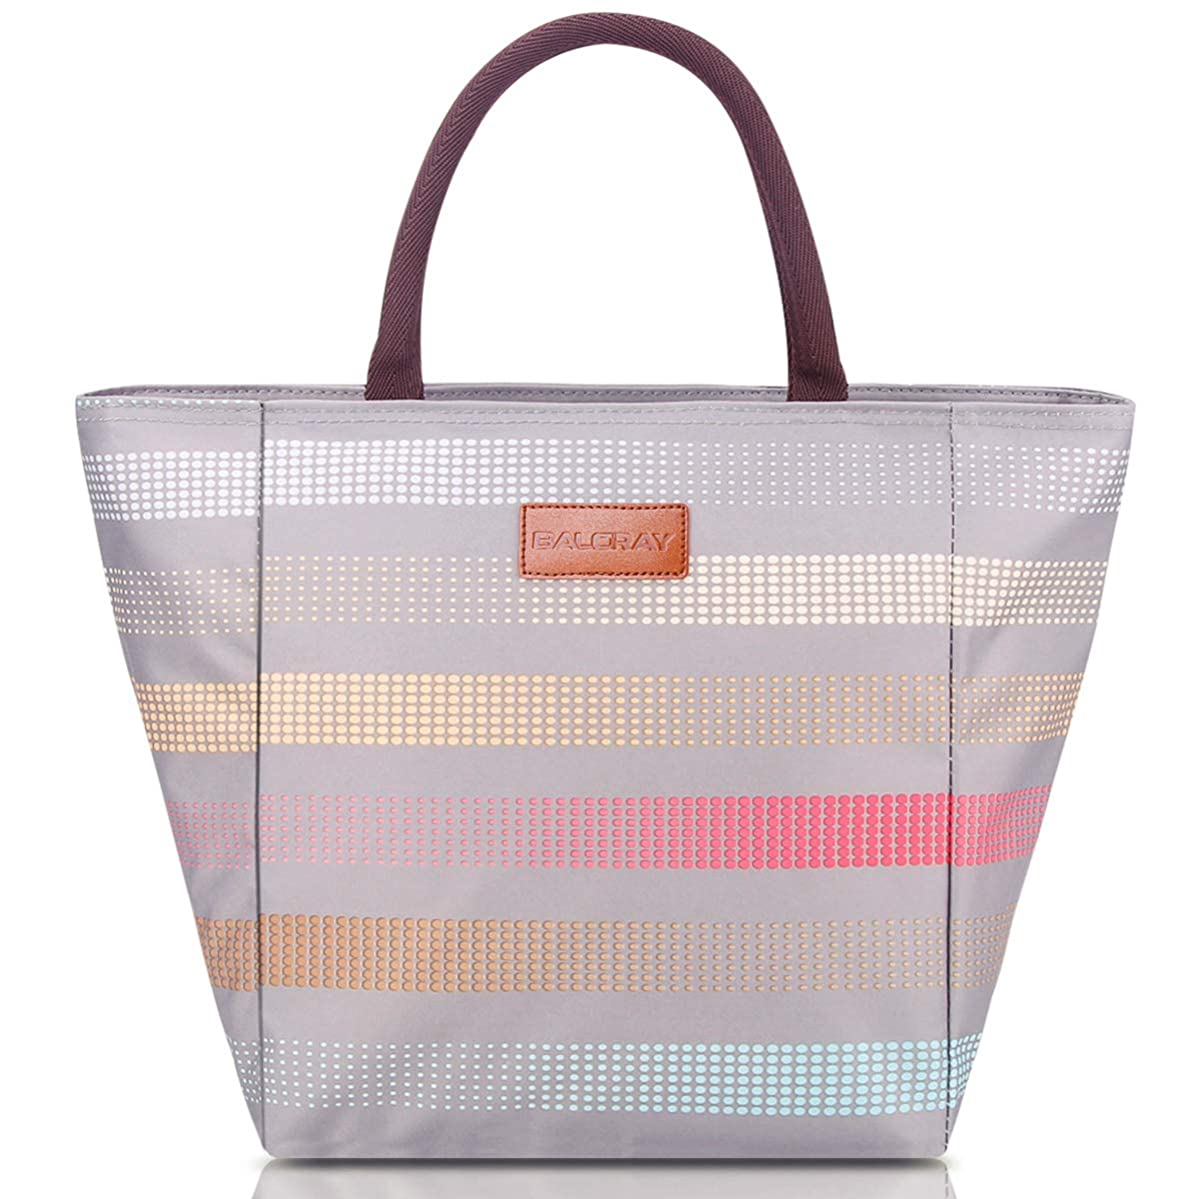 BALORAY Lunch Bags for Women Lunch Tote Bag Stylish Lunch Organizer Lunch Container (G-199XL Grey)